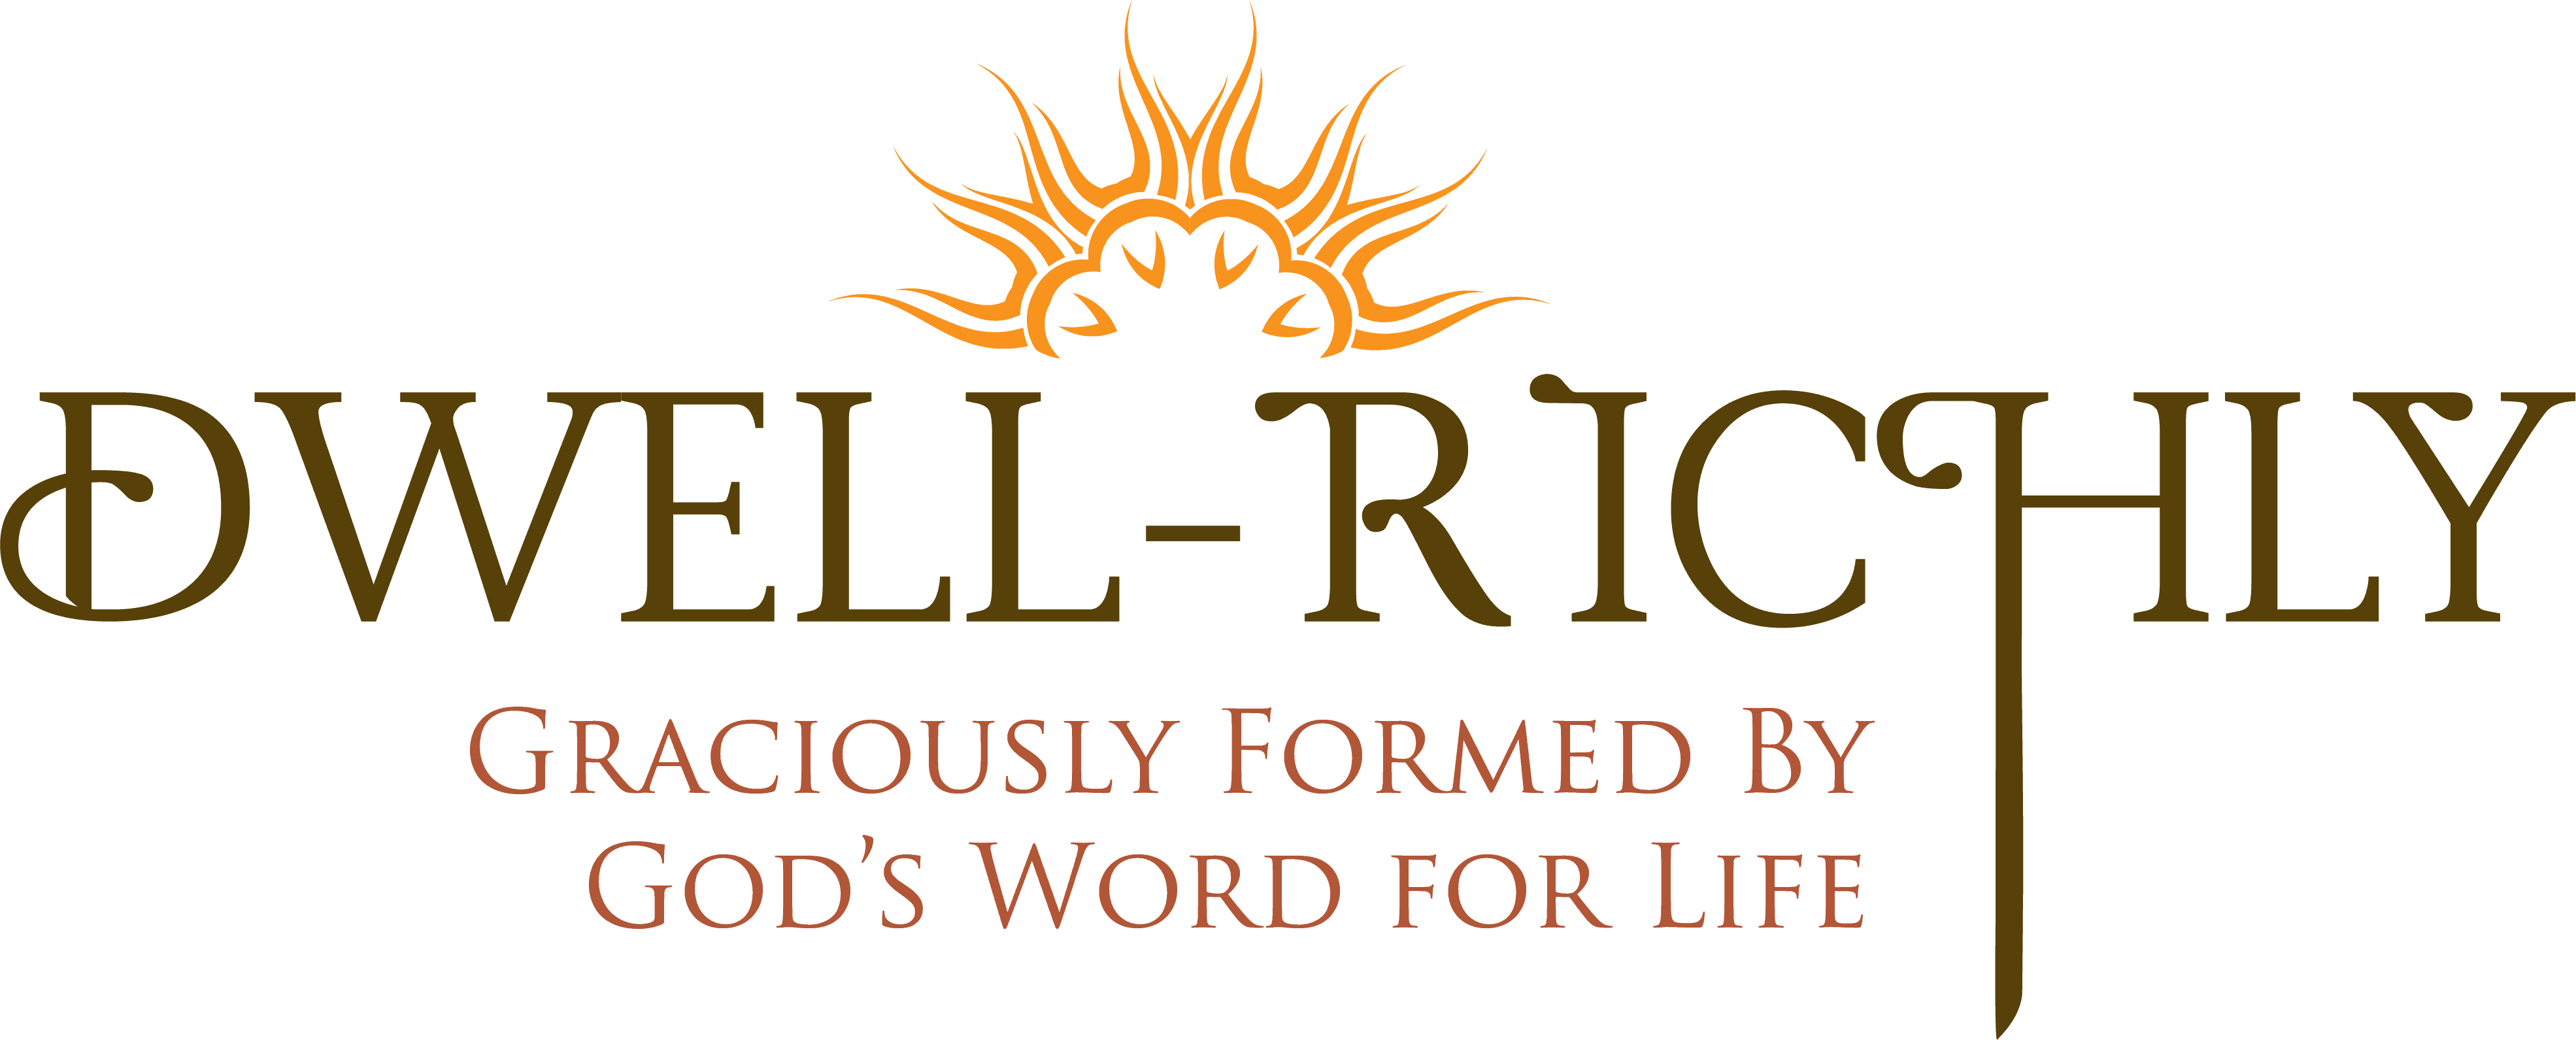 https://www.sumydesigns.com/wp-content/webpc-passthru.php?src=https://www.sumydesigns.com/wp-content/uploads/2016/06/Dwell-Richly_Logo_Color.png&nocache=1